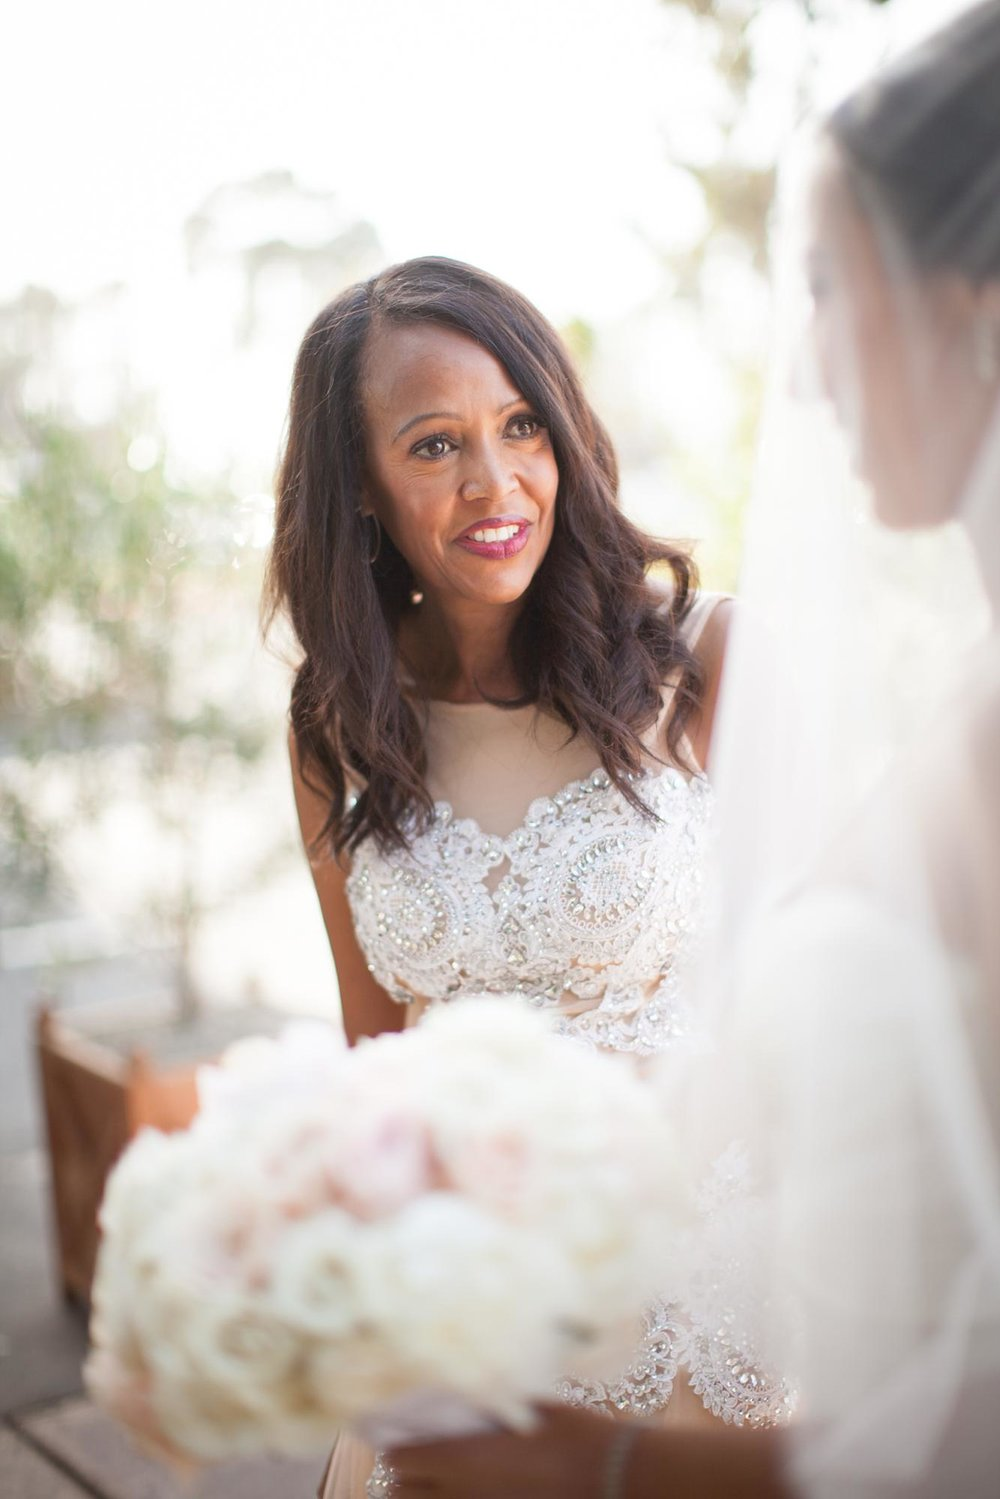 Ritz Carlton Bacara Wedding | Miki & Sonja Photography | mikiandsonja.com